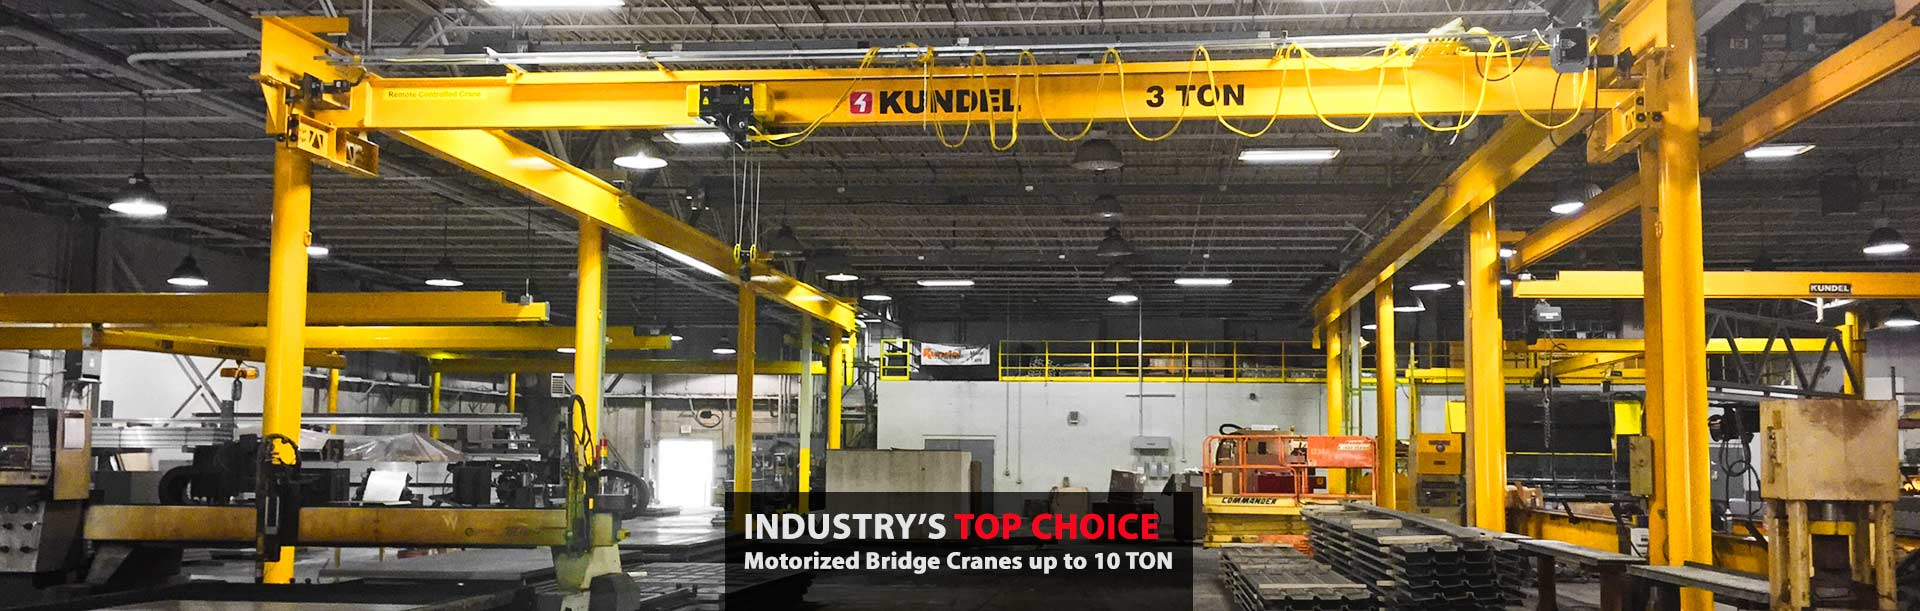 https://kundelcranes.com/sites/default/files/revslider/image/KundelCranes-HomeSlider-Industry-Top-Choice.jpg